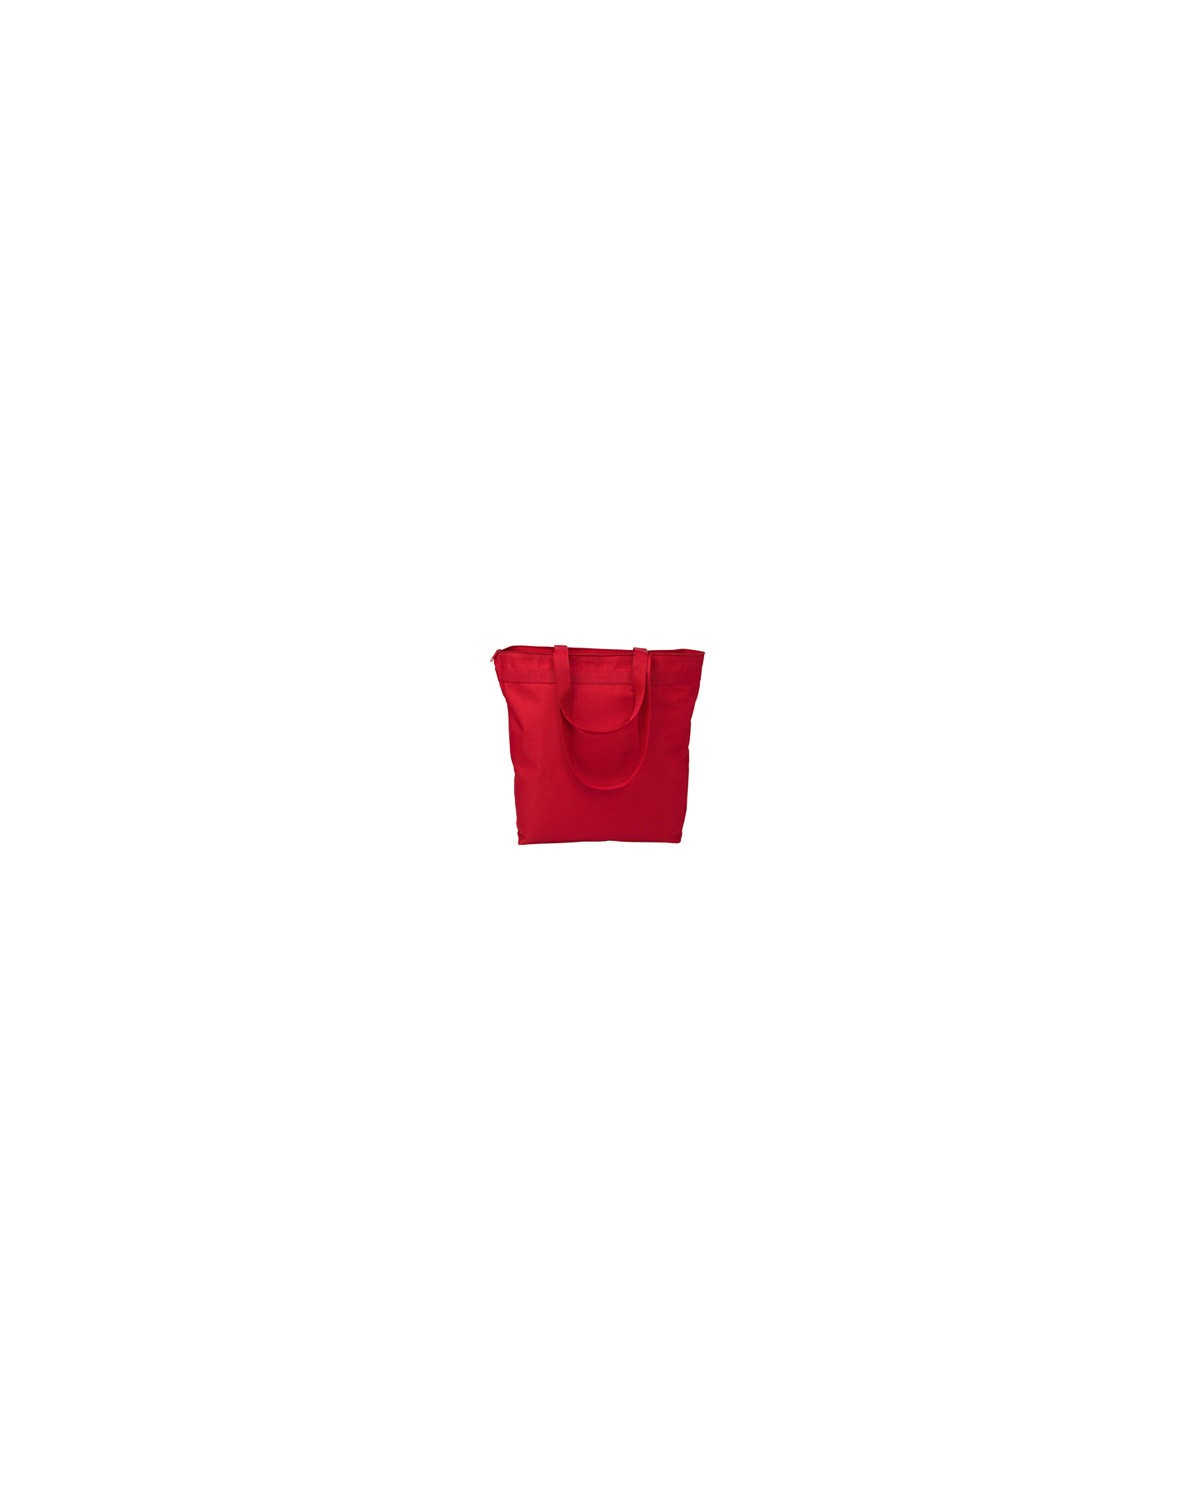 8802 Liberty Bags RED